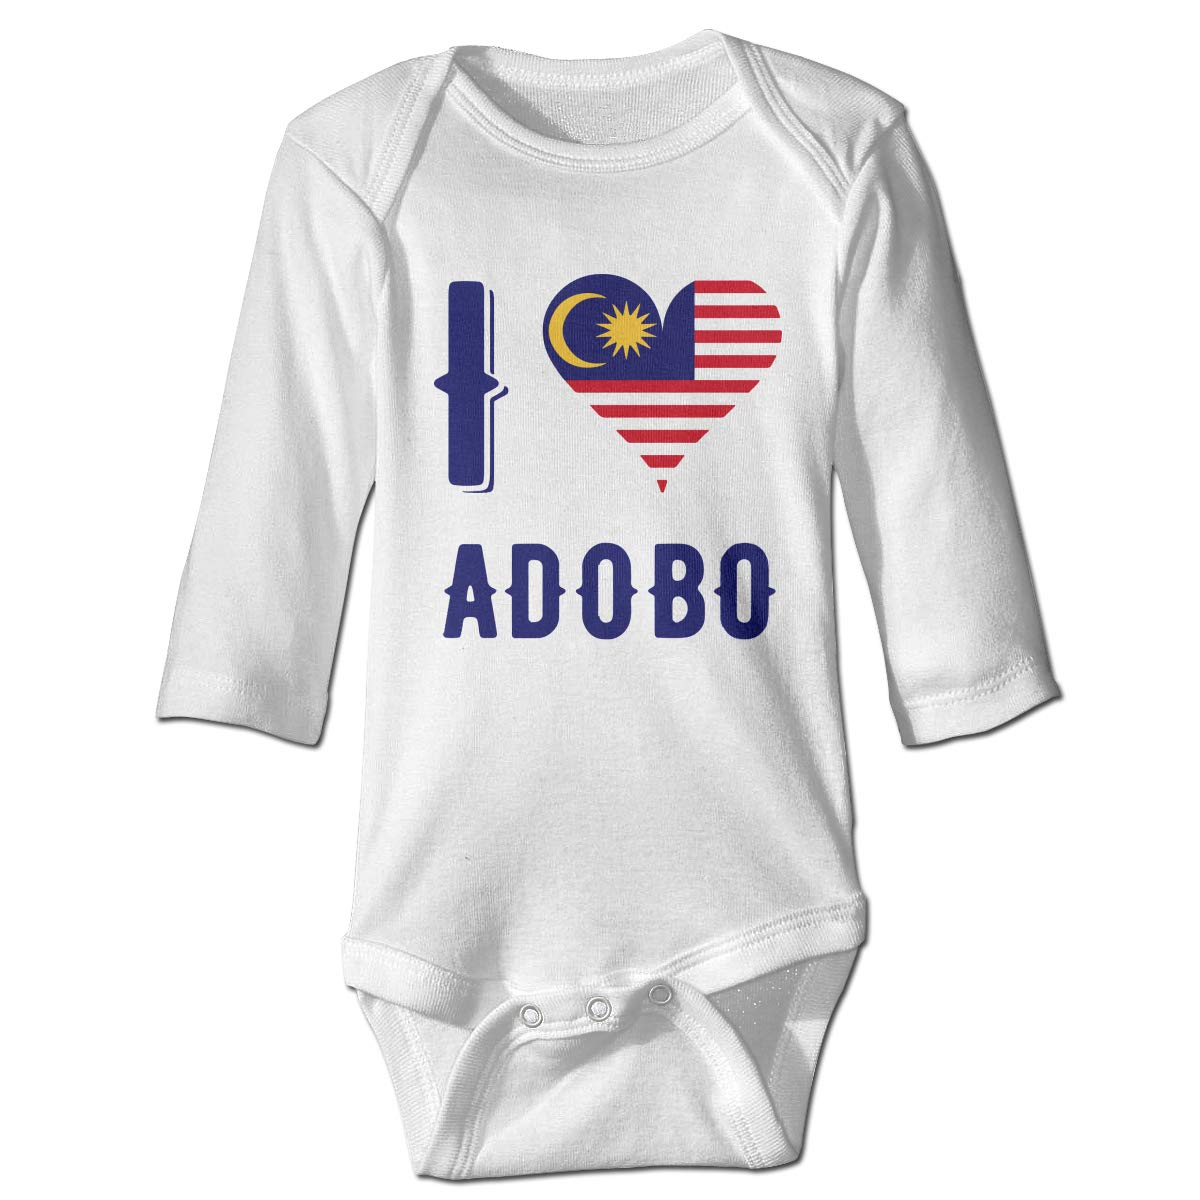 Newborn I Love Adobo Long Sleeve Climbing Clothes Romper Jumpsuit Suit 6-24 Months